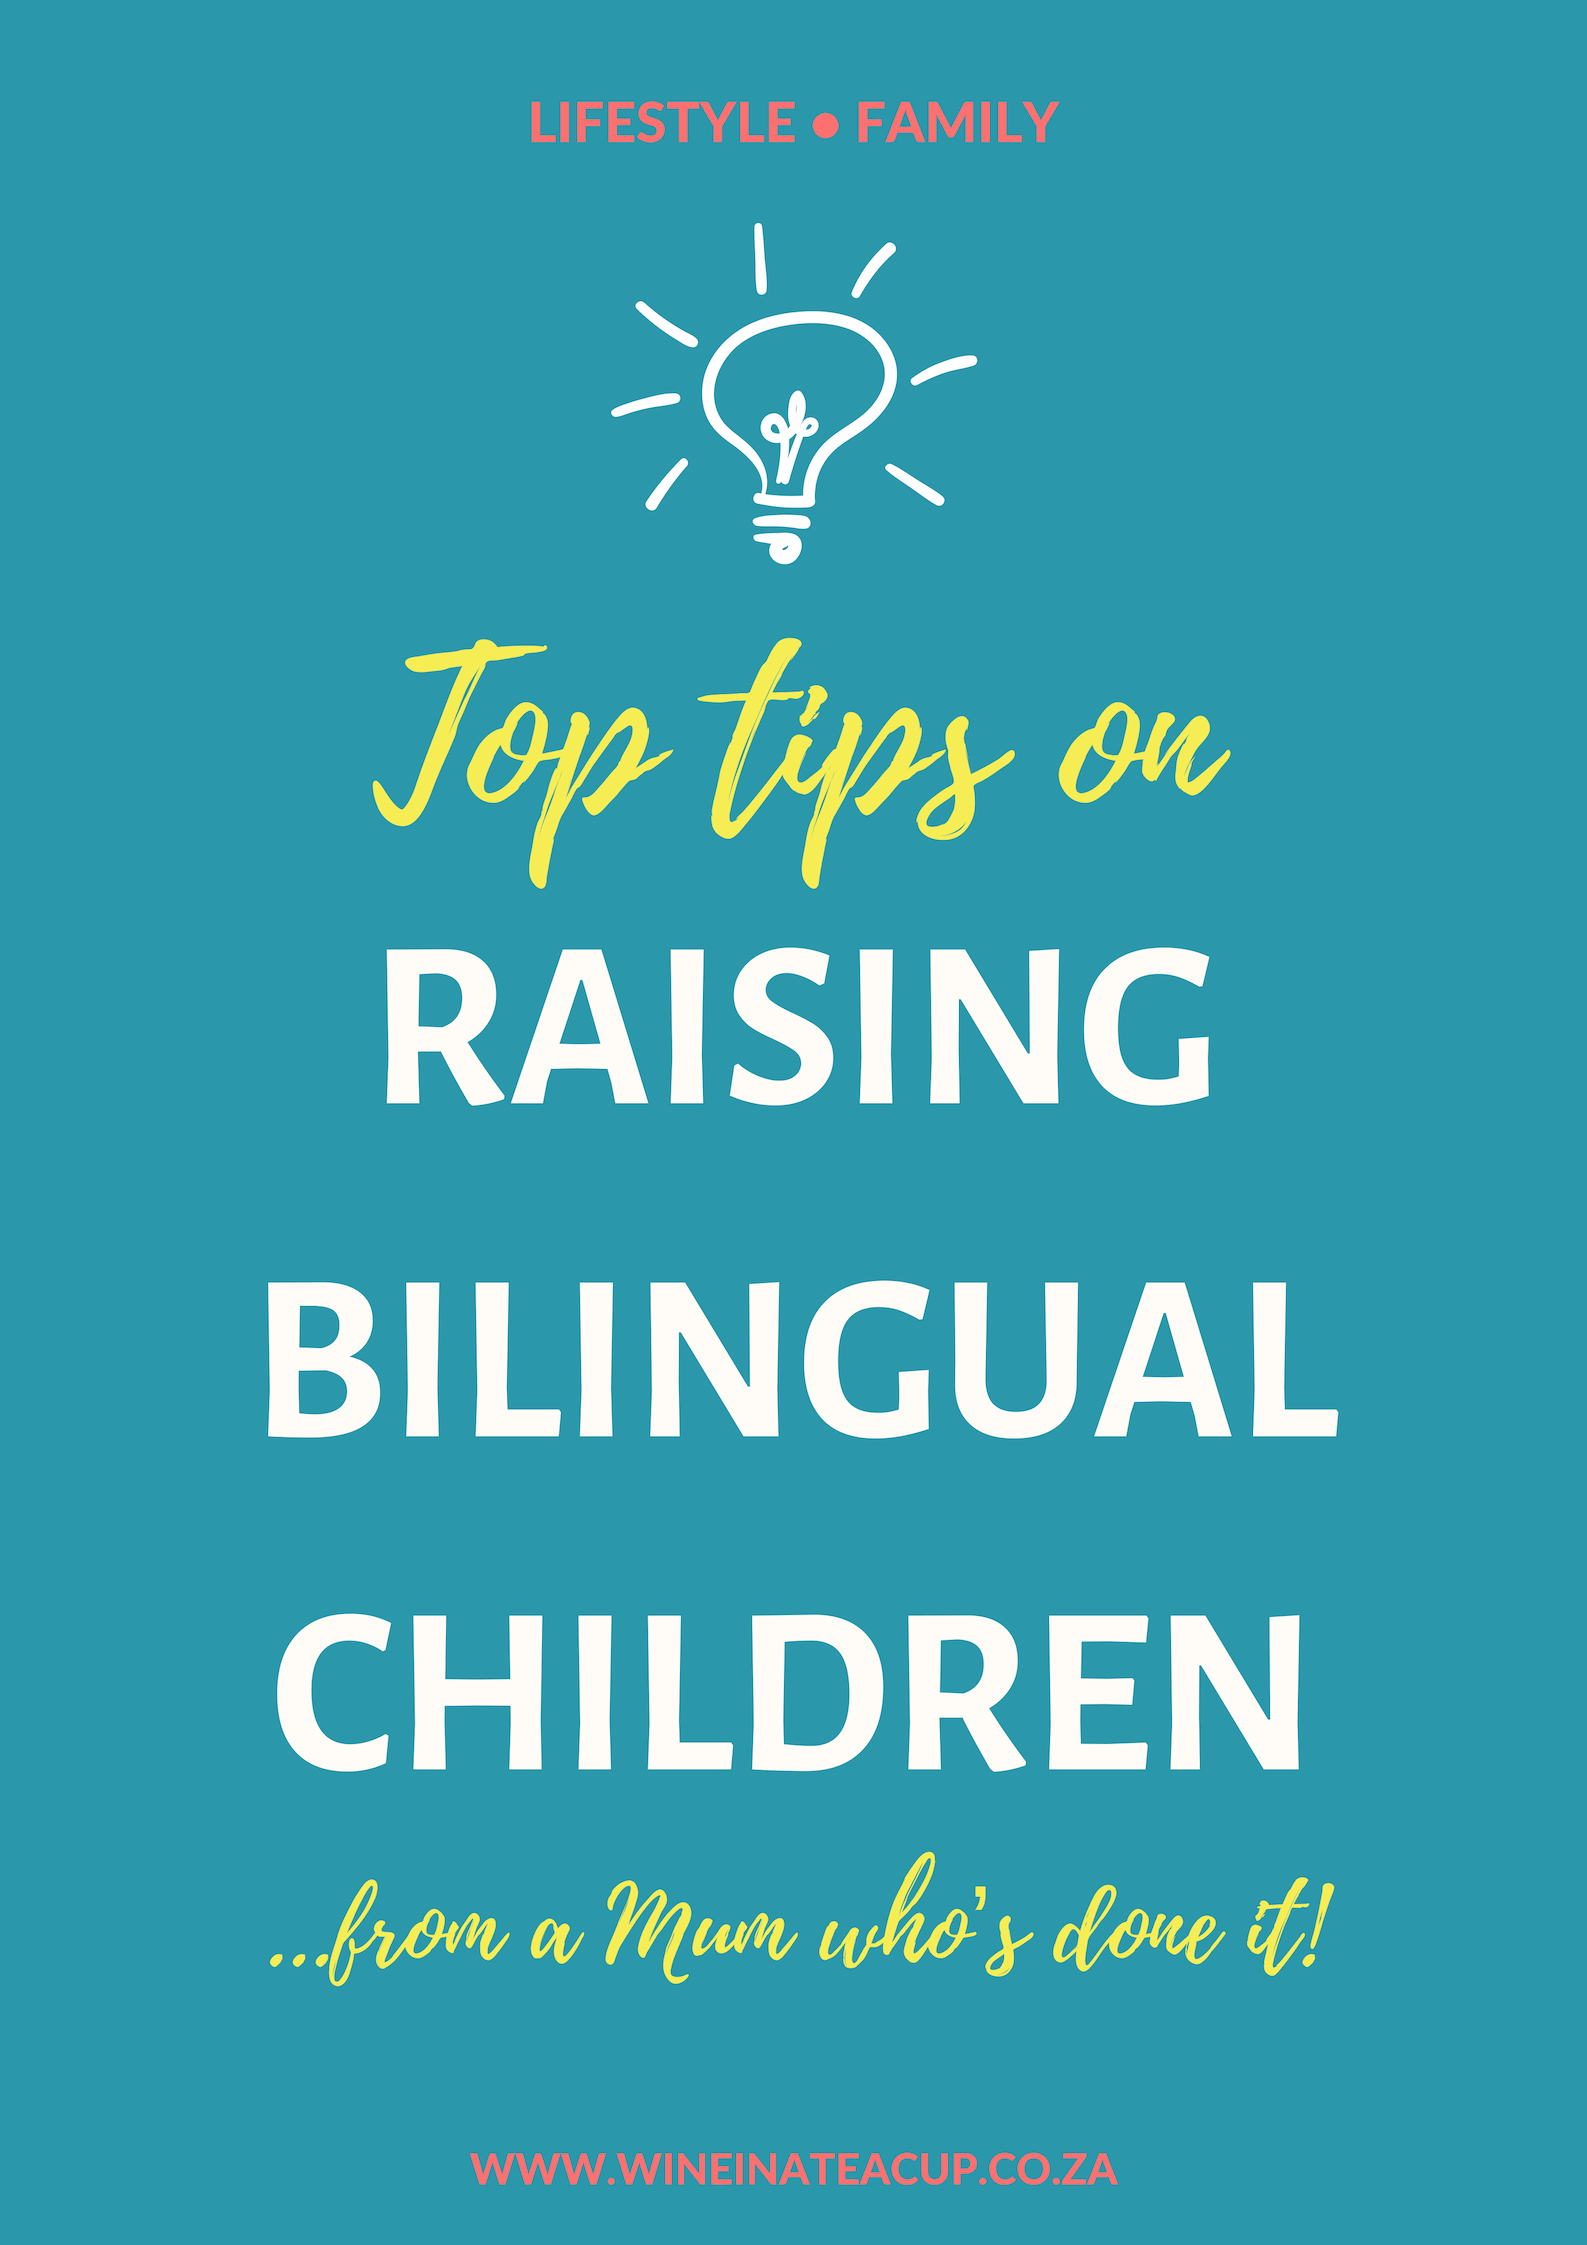 Raising Bilingual Children. Top tips from a a Mum who has successful begun to raise her children to speak two languages fluently. #bilingual #bilingualchildren #raisingbilingualchildren